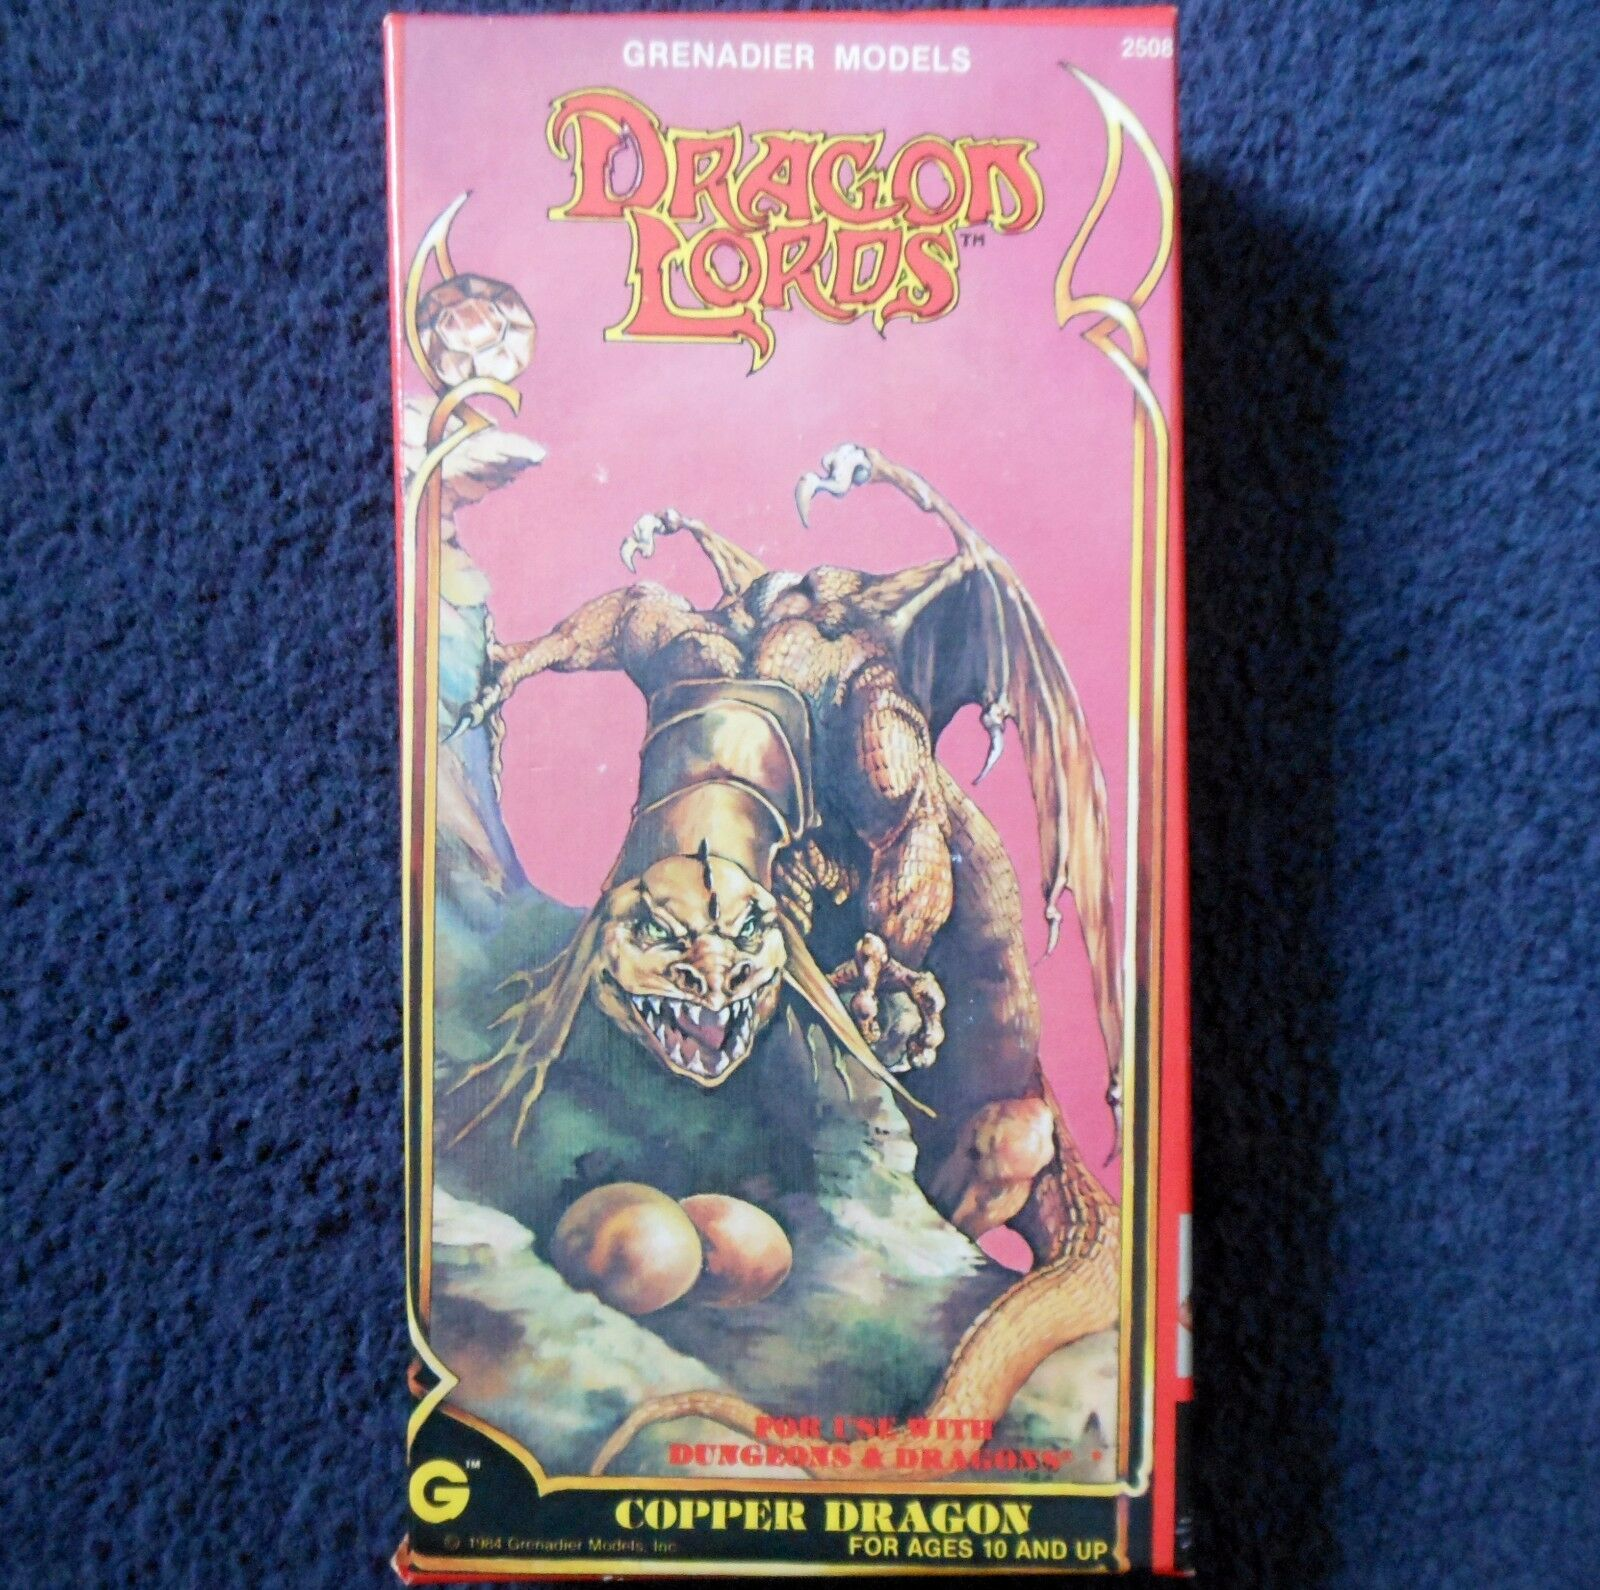 1984 kupfer drachen lords grenadier - modelle 2508 dungeons & dragons ad & d wyrm